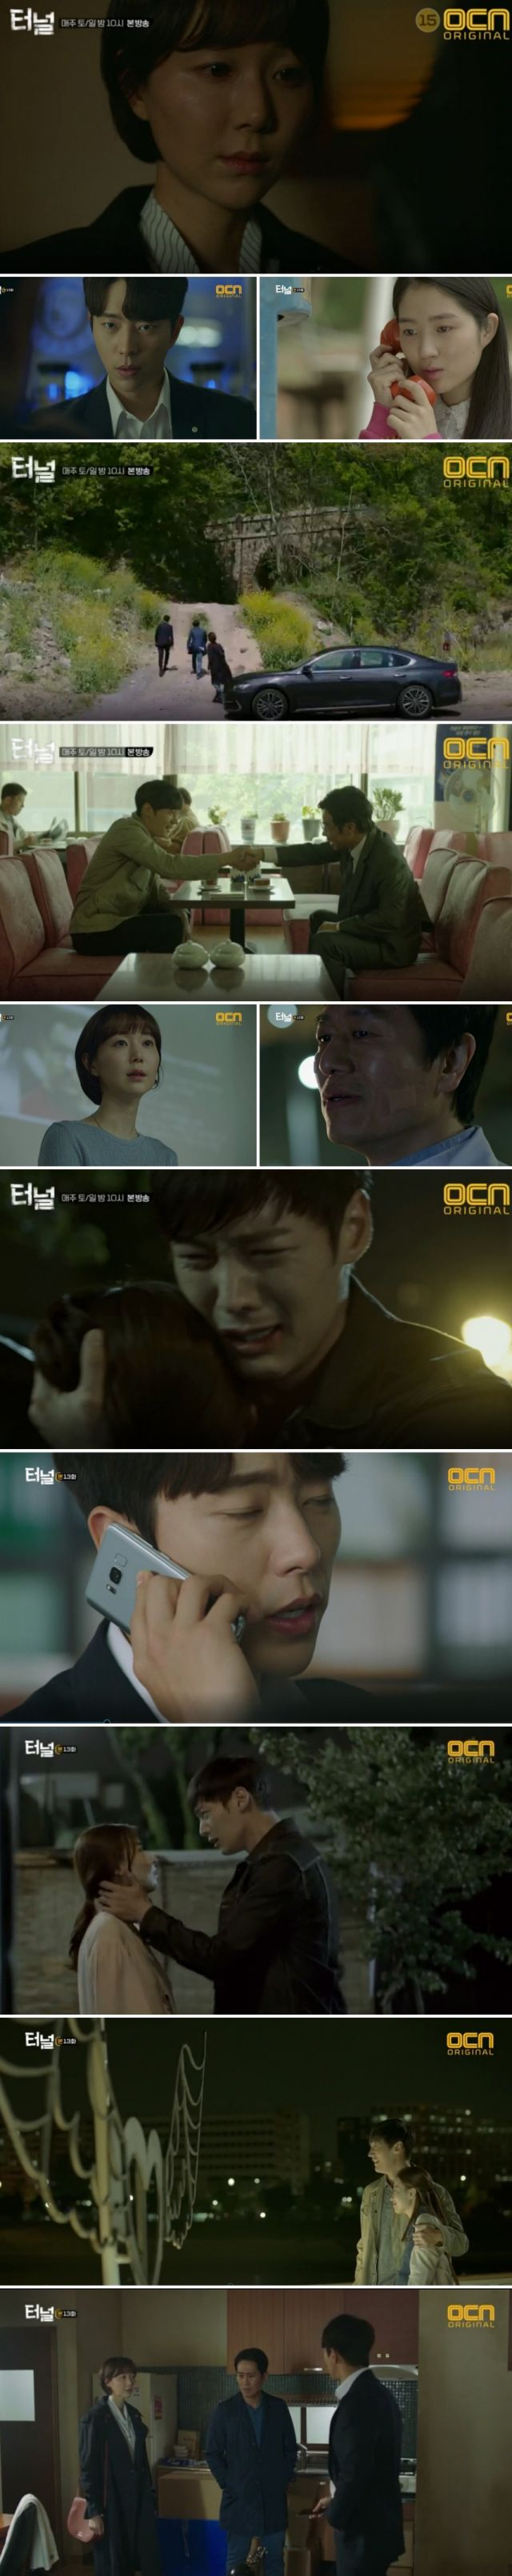 [Spoiler] Added episodes 13 and 14 captures for the Korean drama 'Tunnel – Drama'